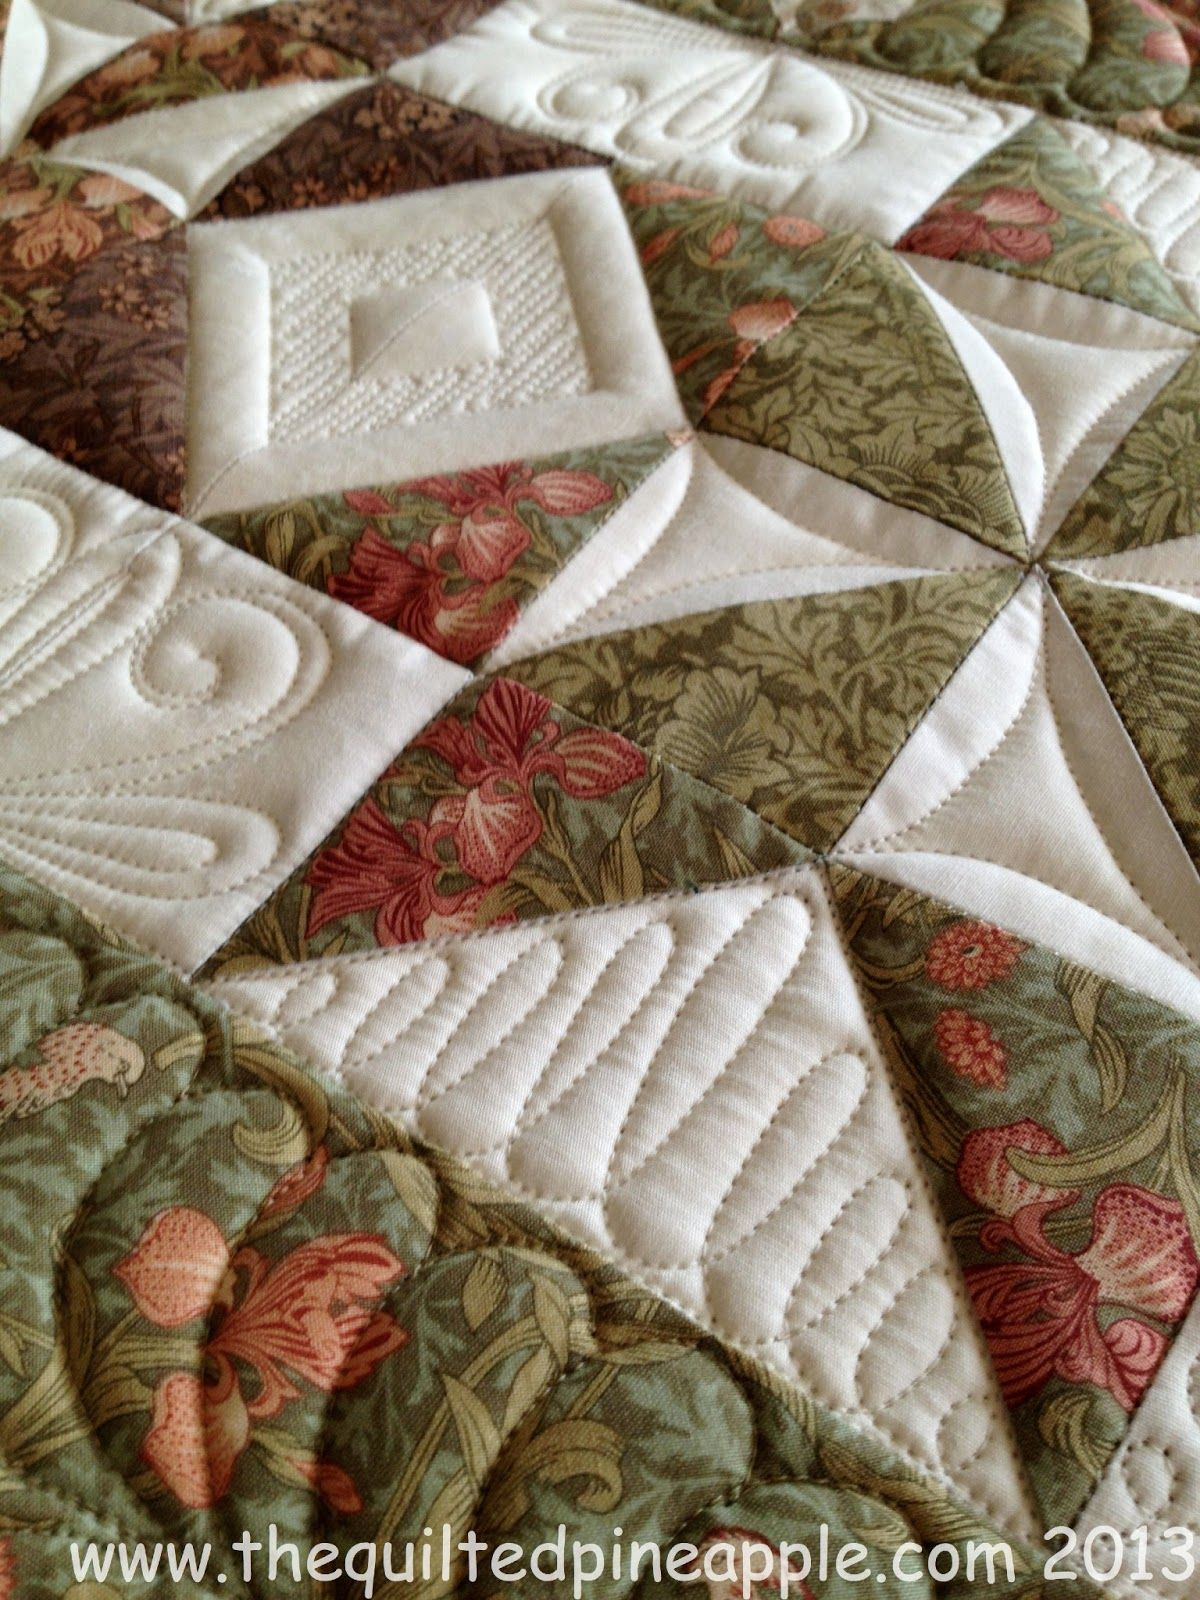 THE QUILTED PINEAPPLE Quilts Pinterest